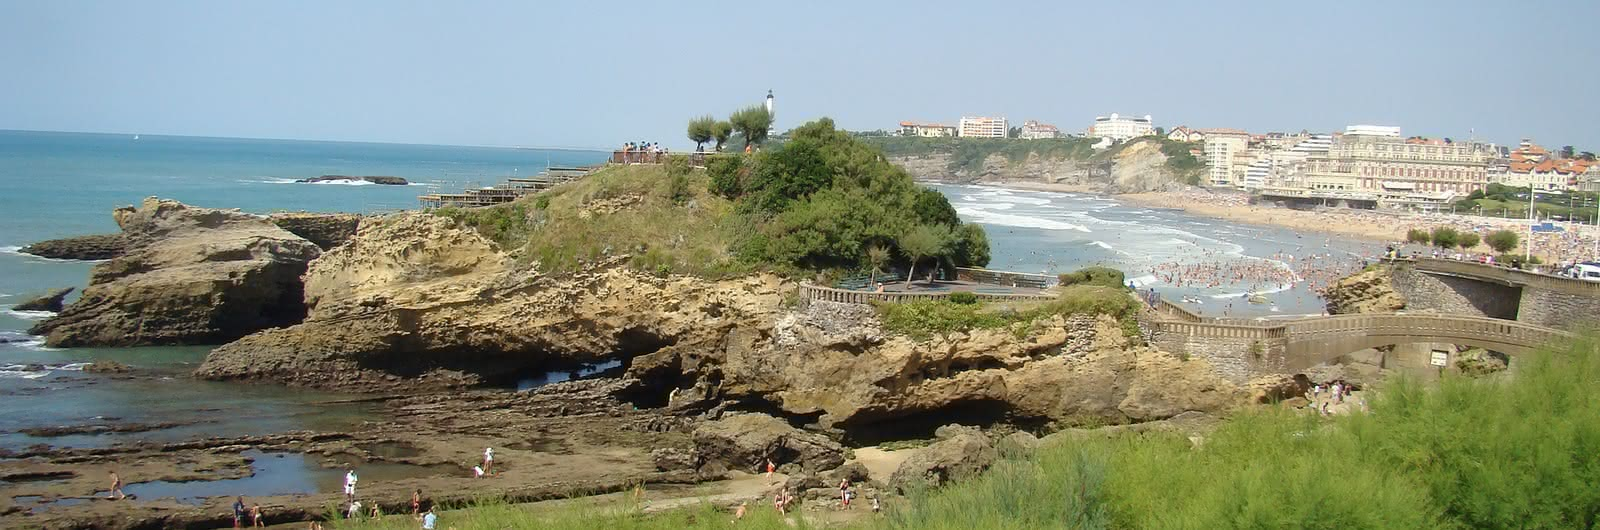 biarritz city header